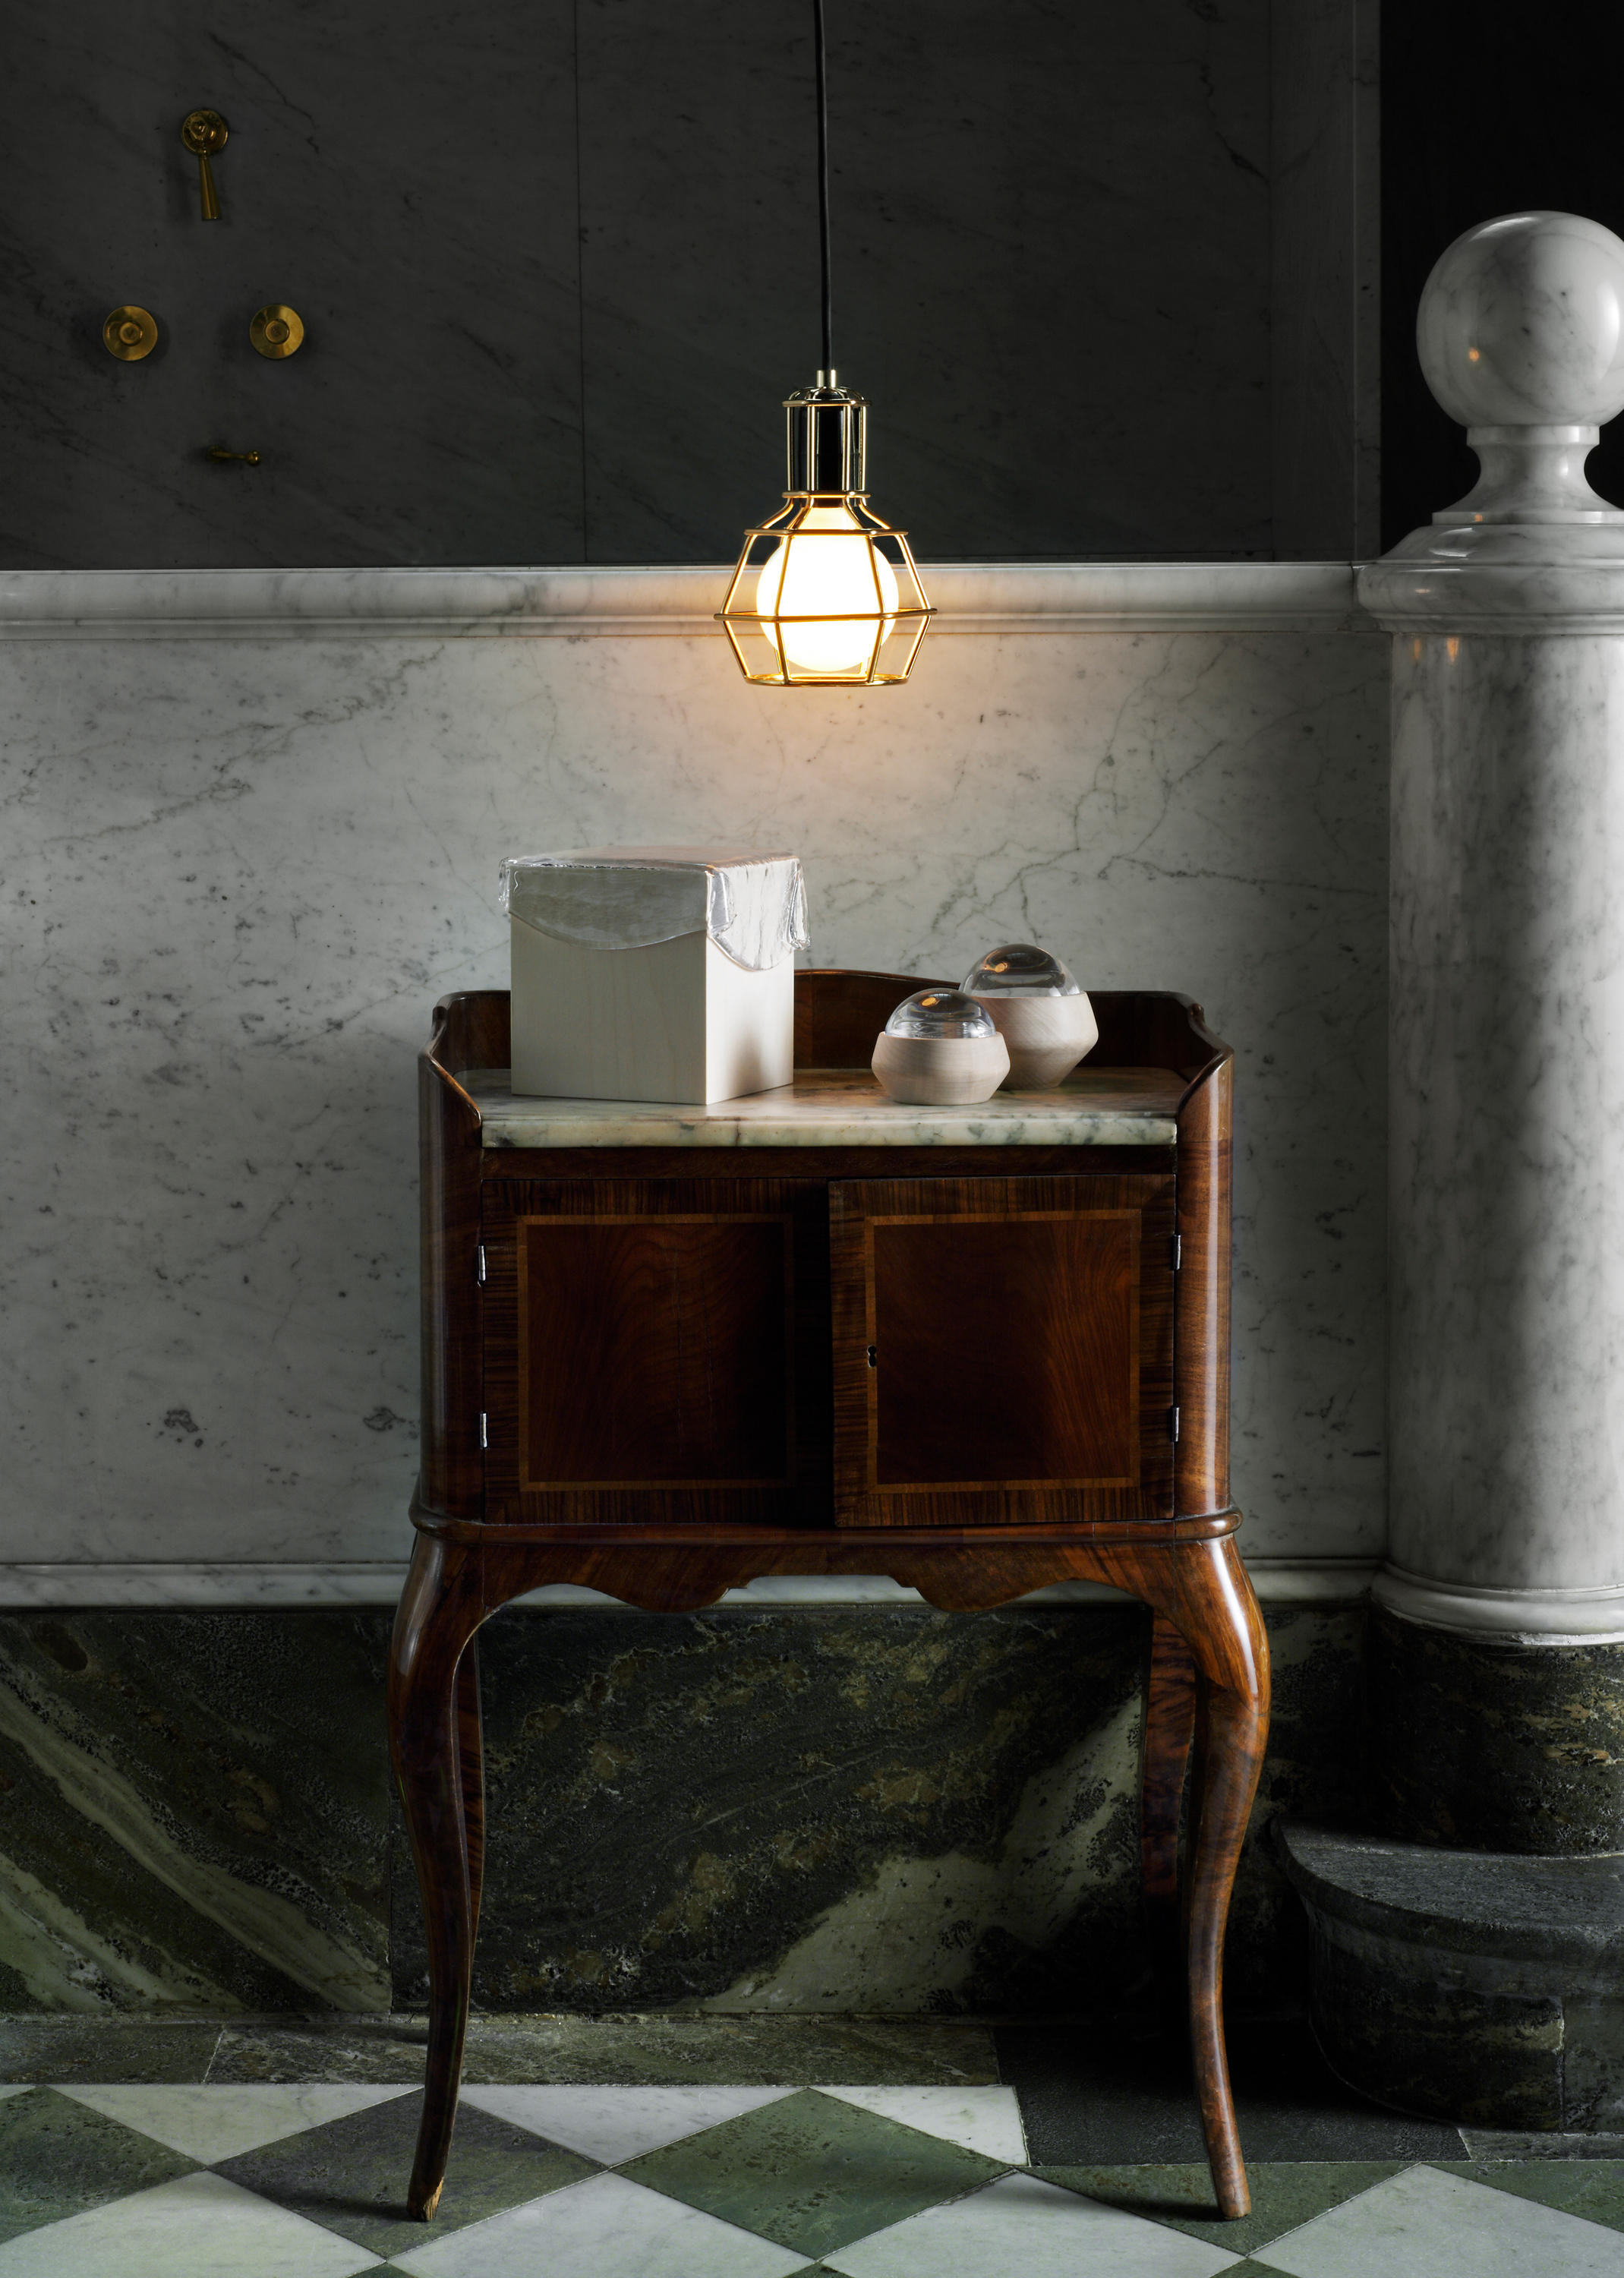 work lamp allgemeinbeleuchtung von design house stockholm architonic. Black Bedroom Furniture Sets. Home Design Ideas